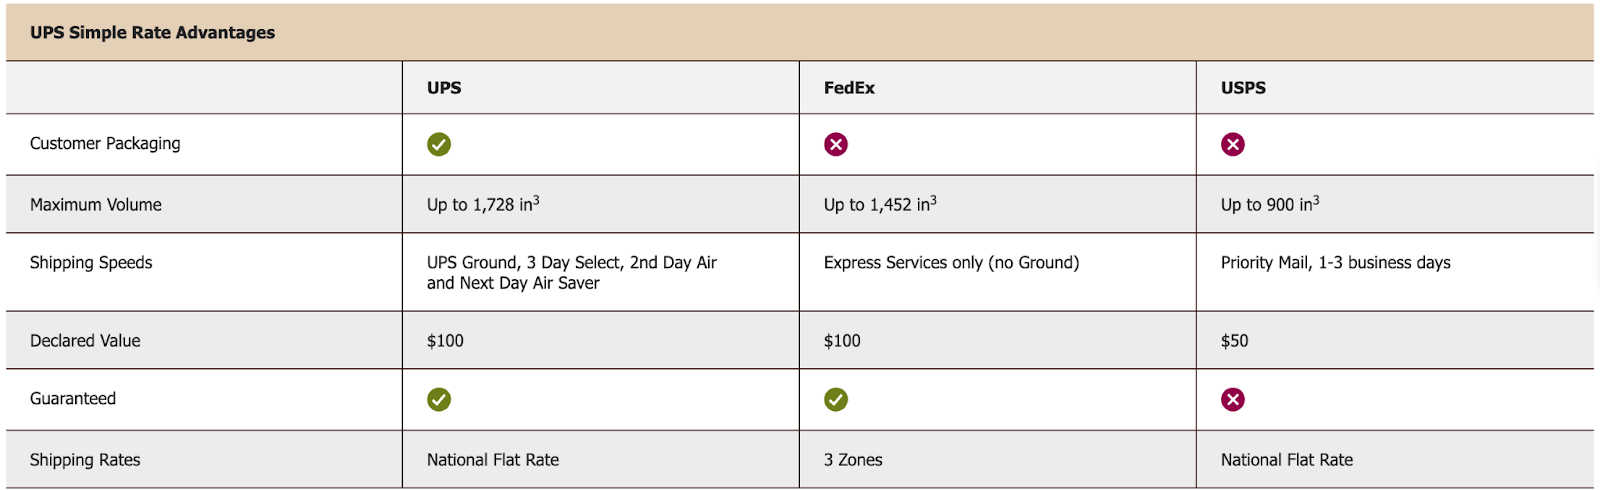 The Benefits of UPS Simple Rate